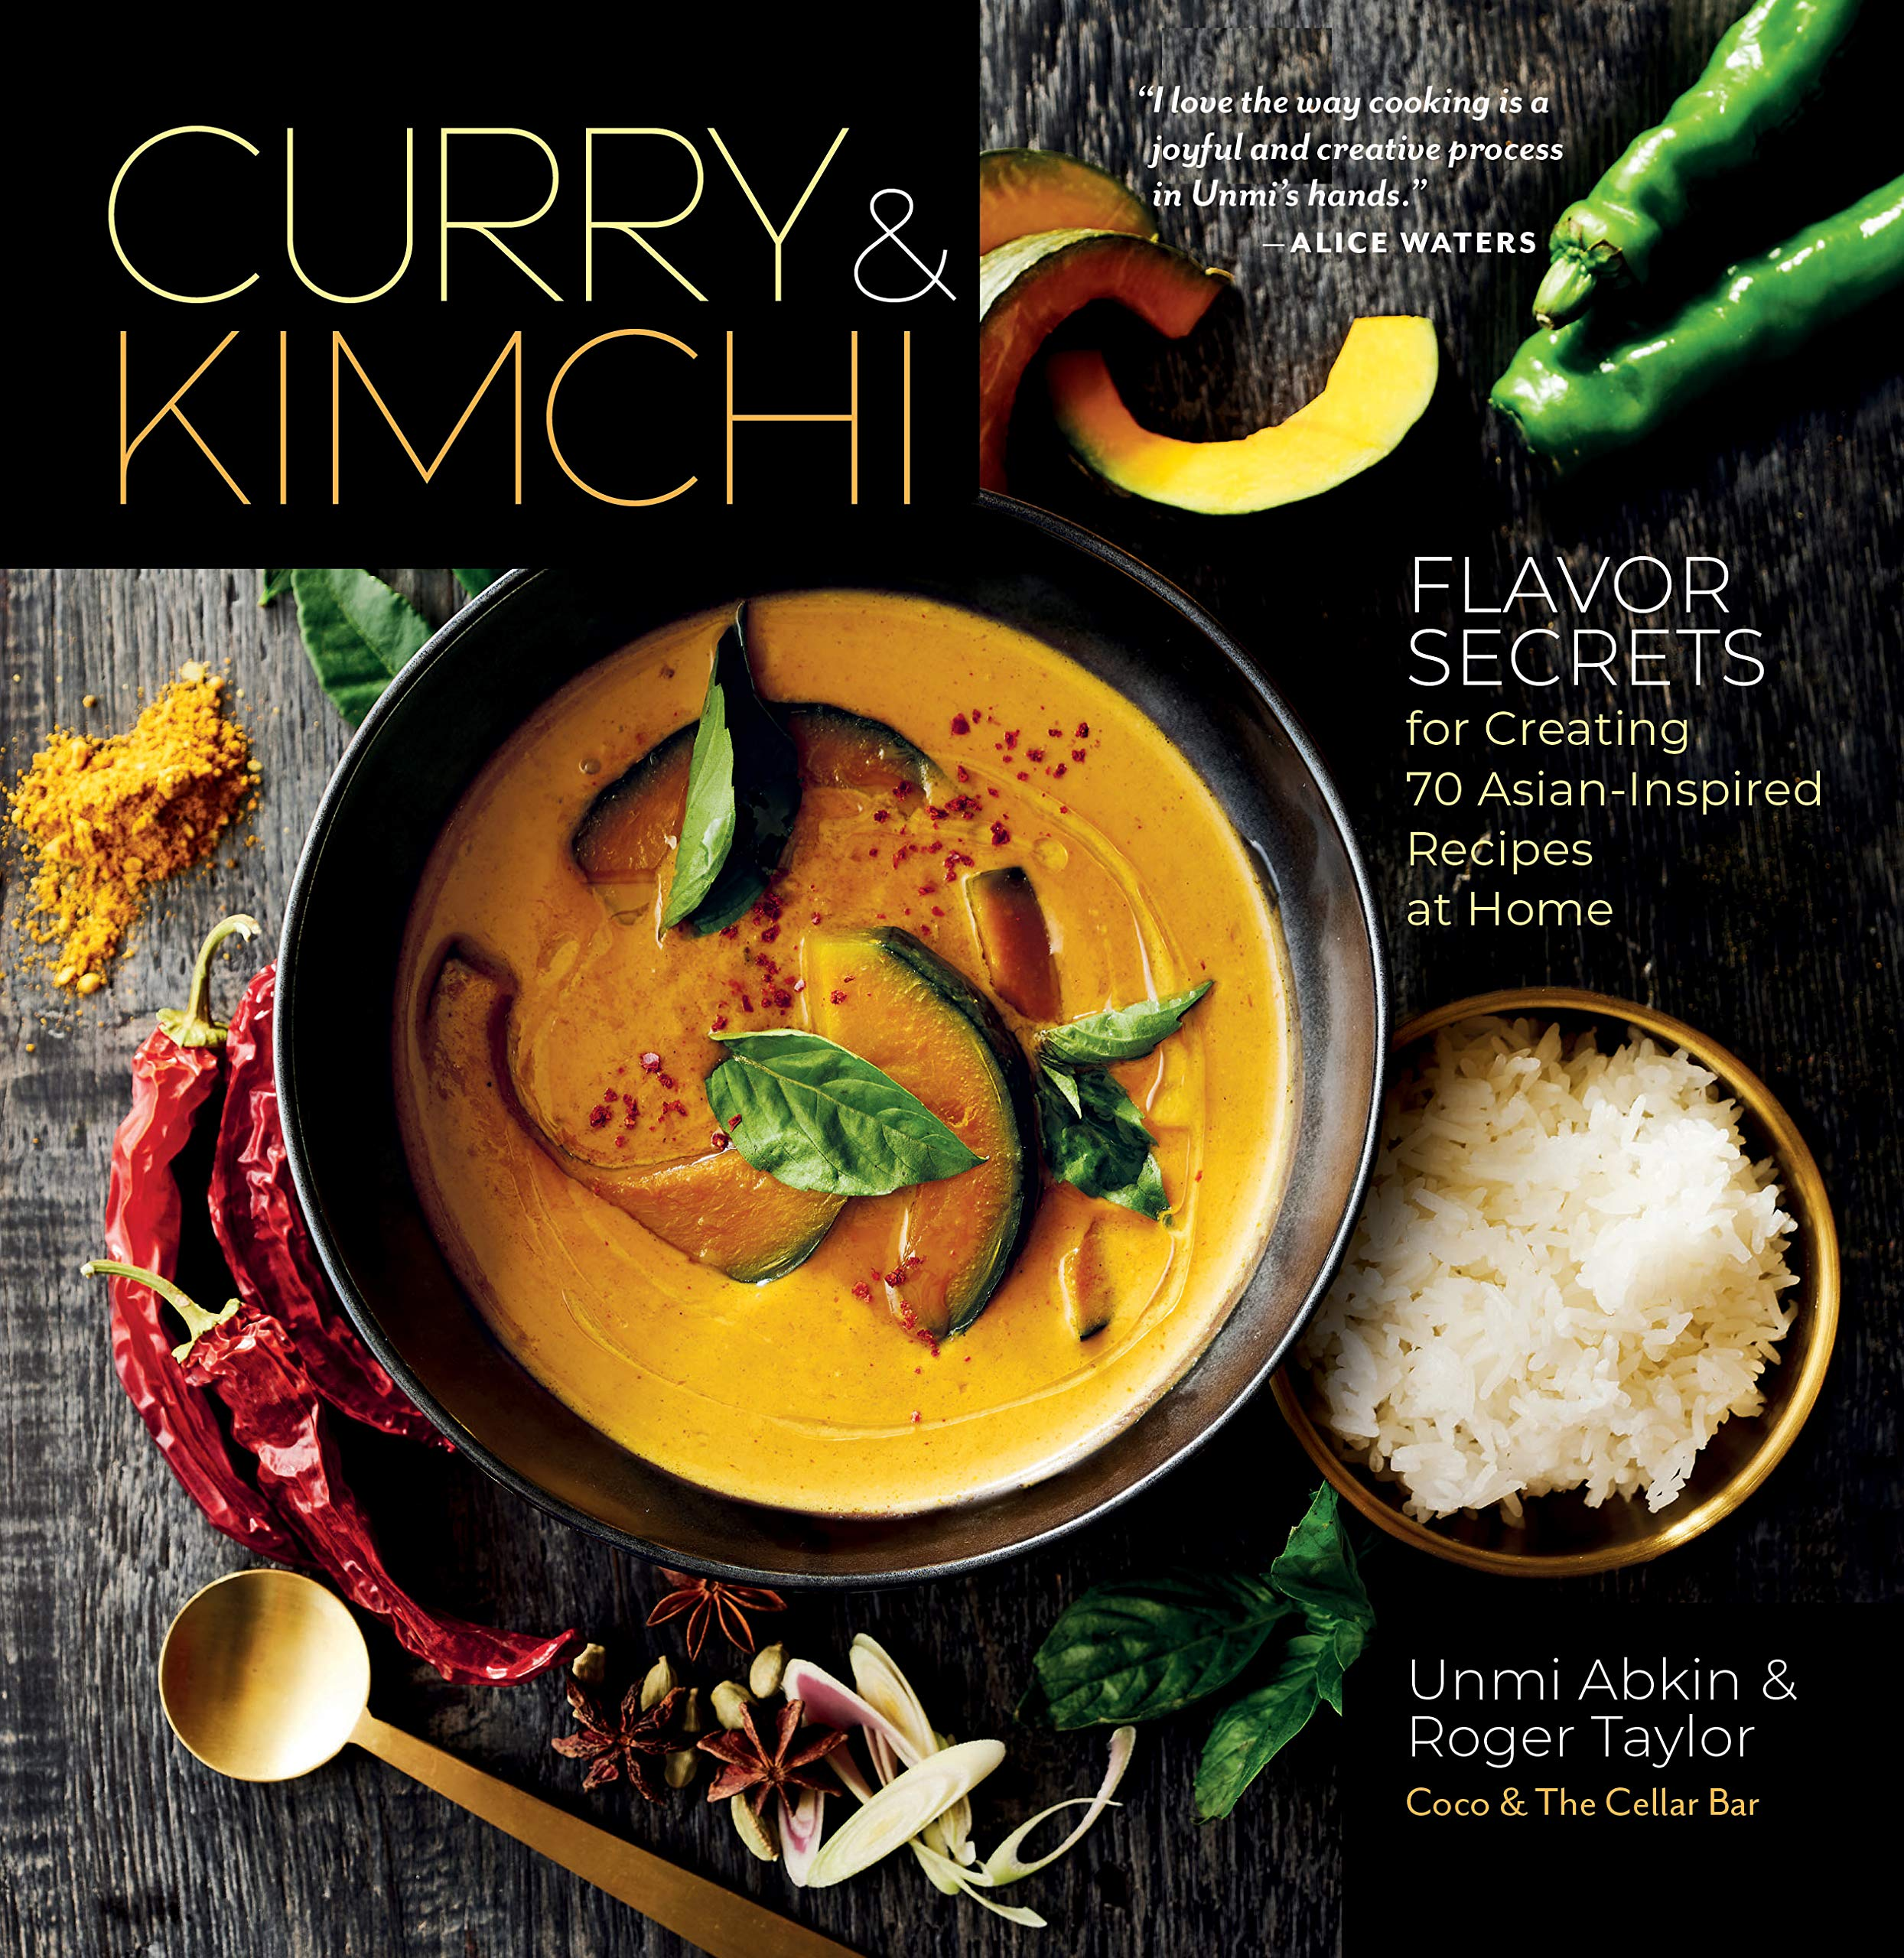 Curry And Kimchi  Flavor Secrets For Creating 70 Asian Inspired Recipes At Home  Chef Unmi Abkin Shares Her Flavor Secrets For Creating Asian Inspired Dishes At Home